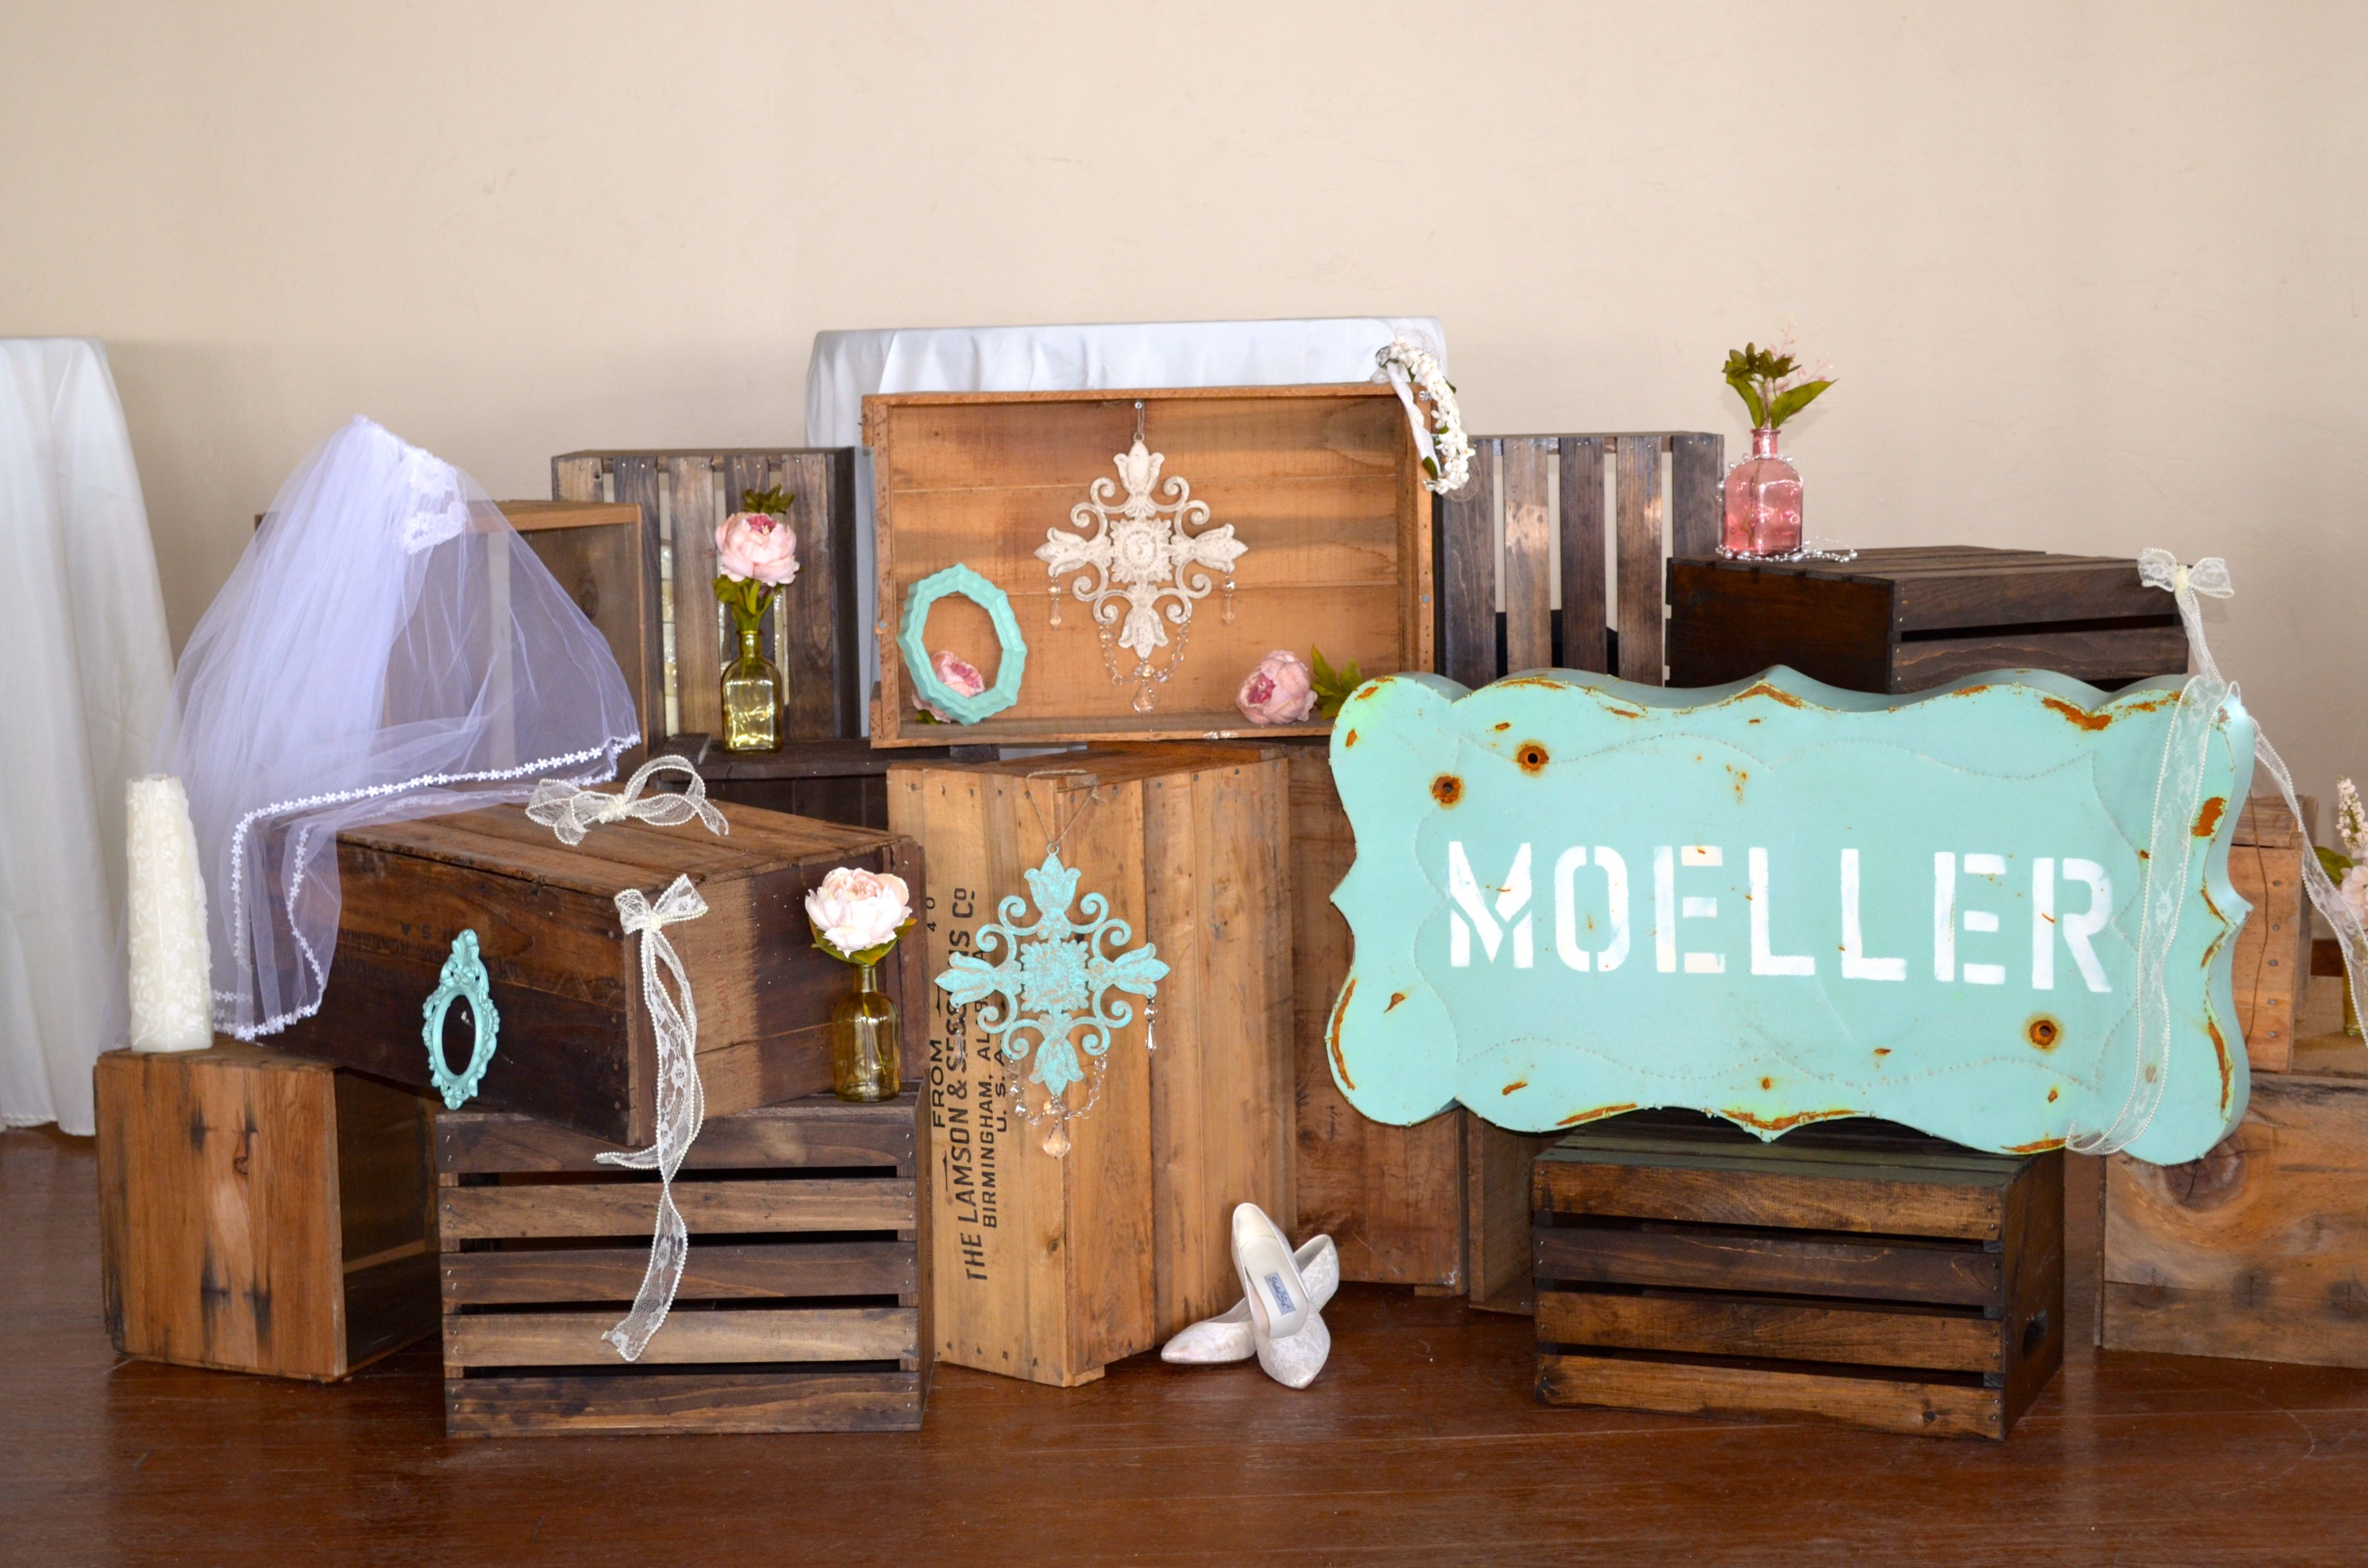 Wooden Crates- cake display-Wedding-Rustic-Shabby chic-cake stand-DIY Wooden Crates By Shelly's Shabby's